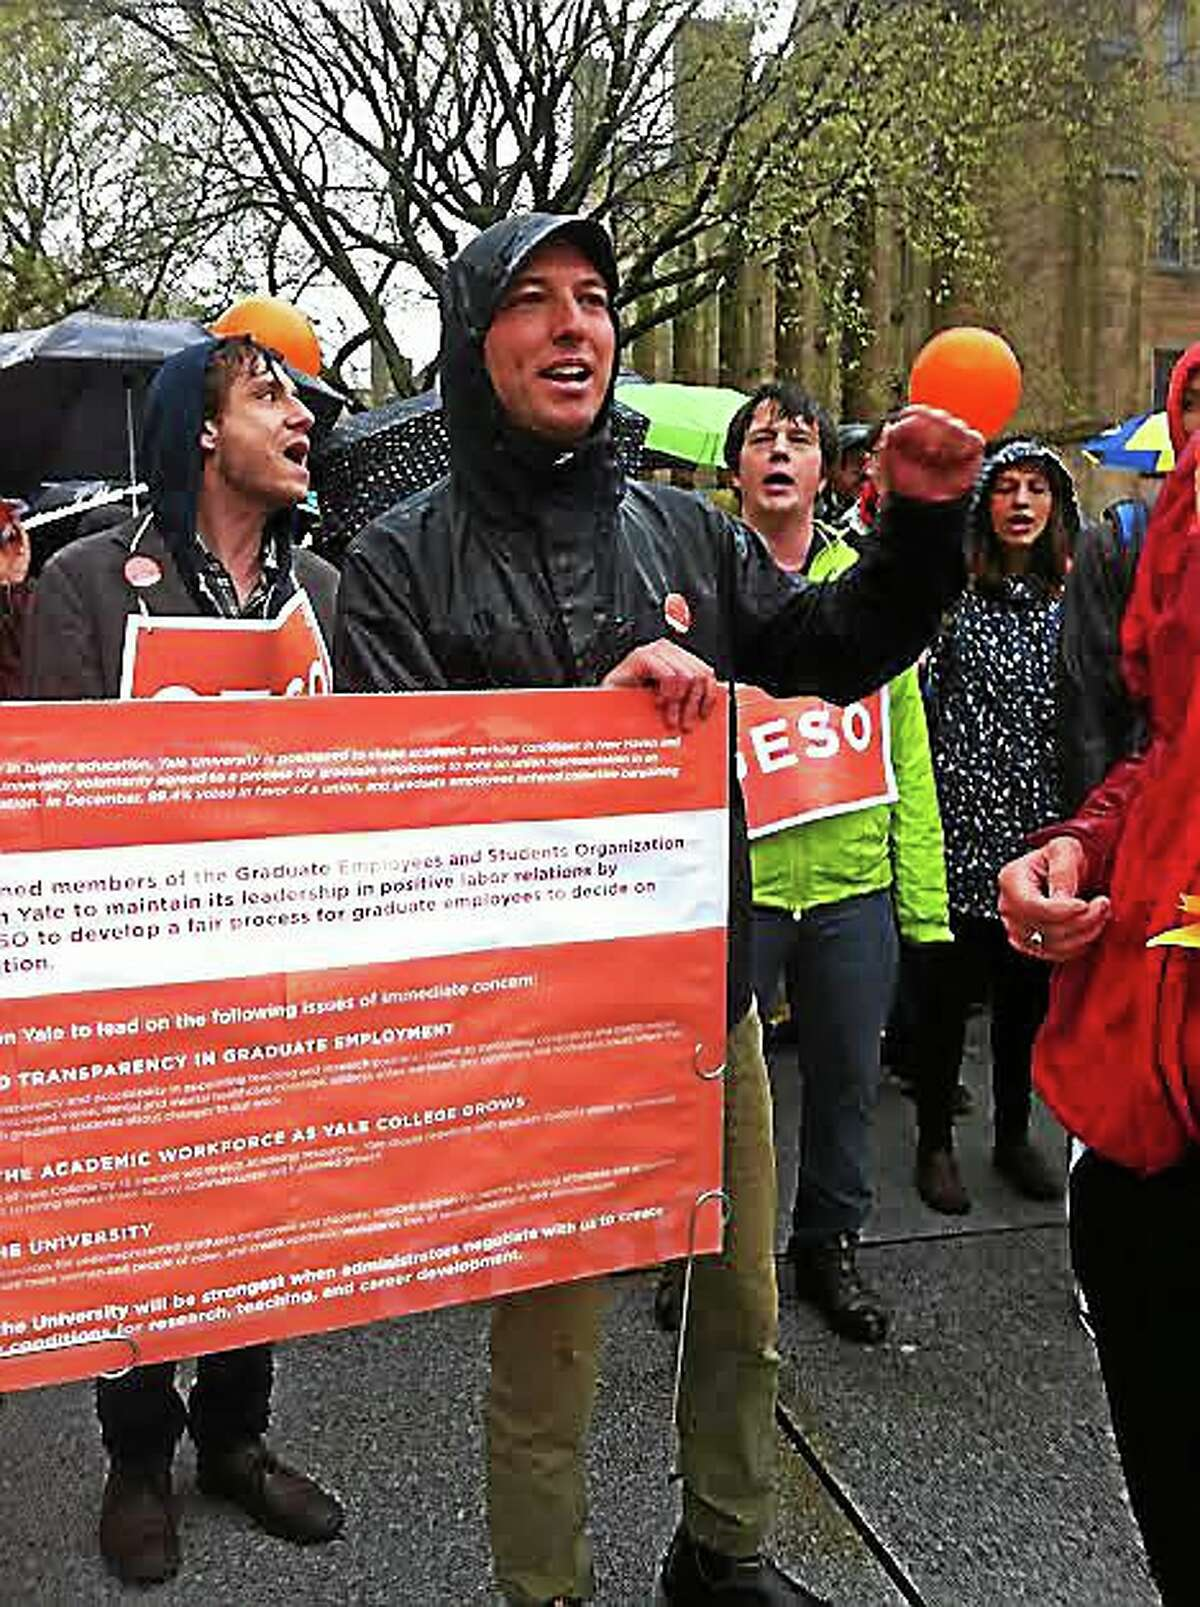 Jim Shelton — New Haven Register/File GESO Chair Aaron Greenberg, center, leads a rally asking Yale University to agree to a unionization vote for graduate students.